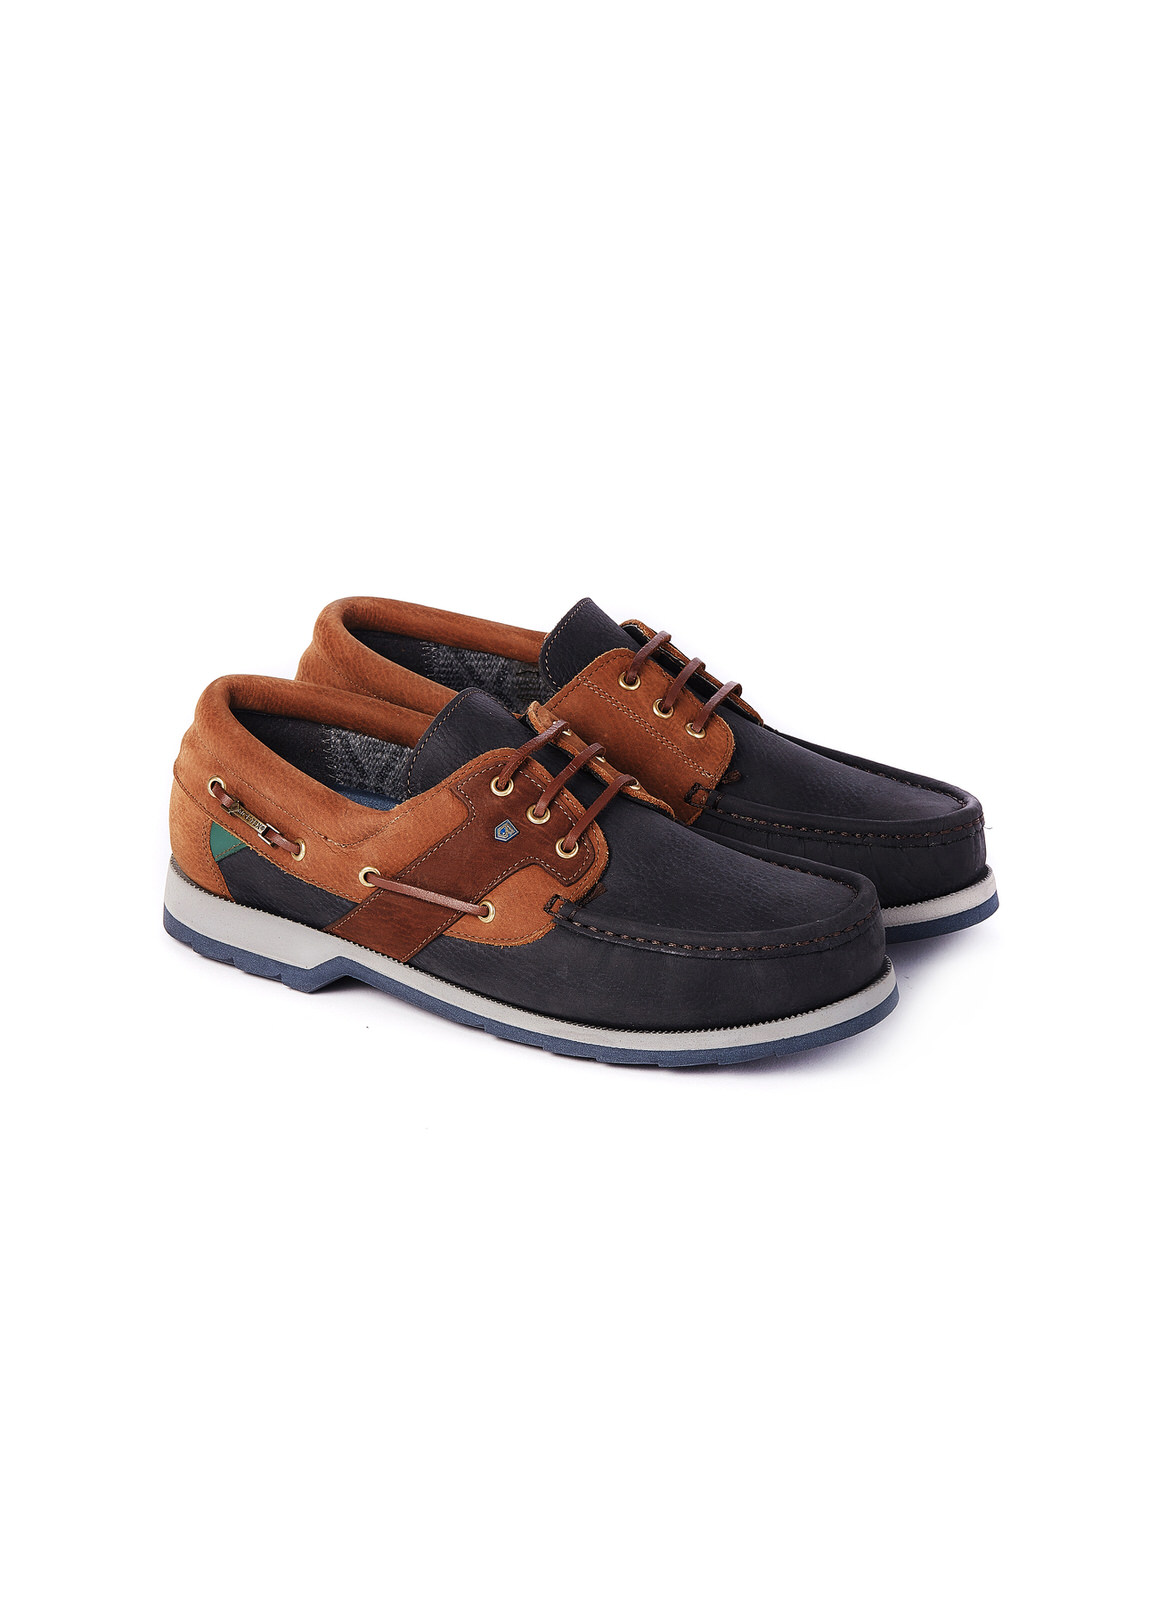 Clipper_Deck_Shoe_Navy/Brown_Image_1